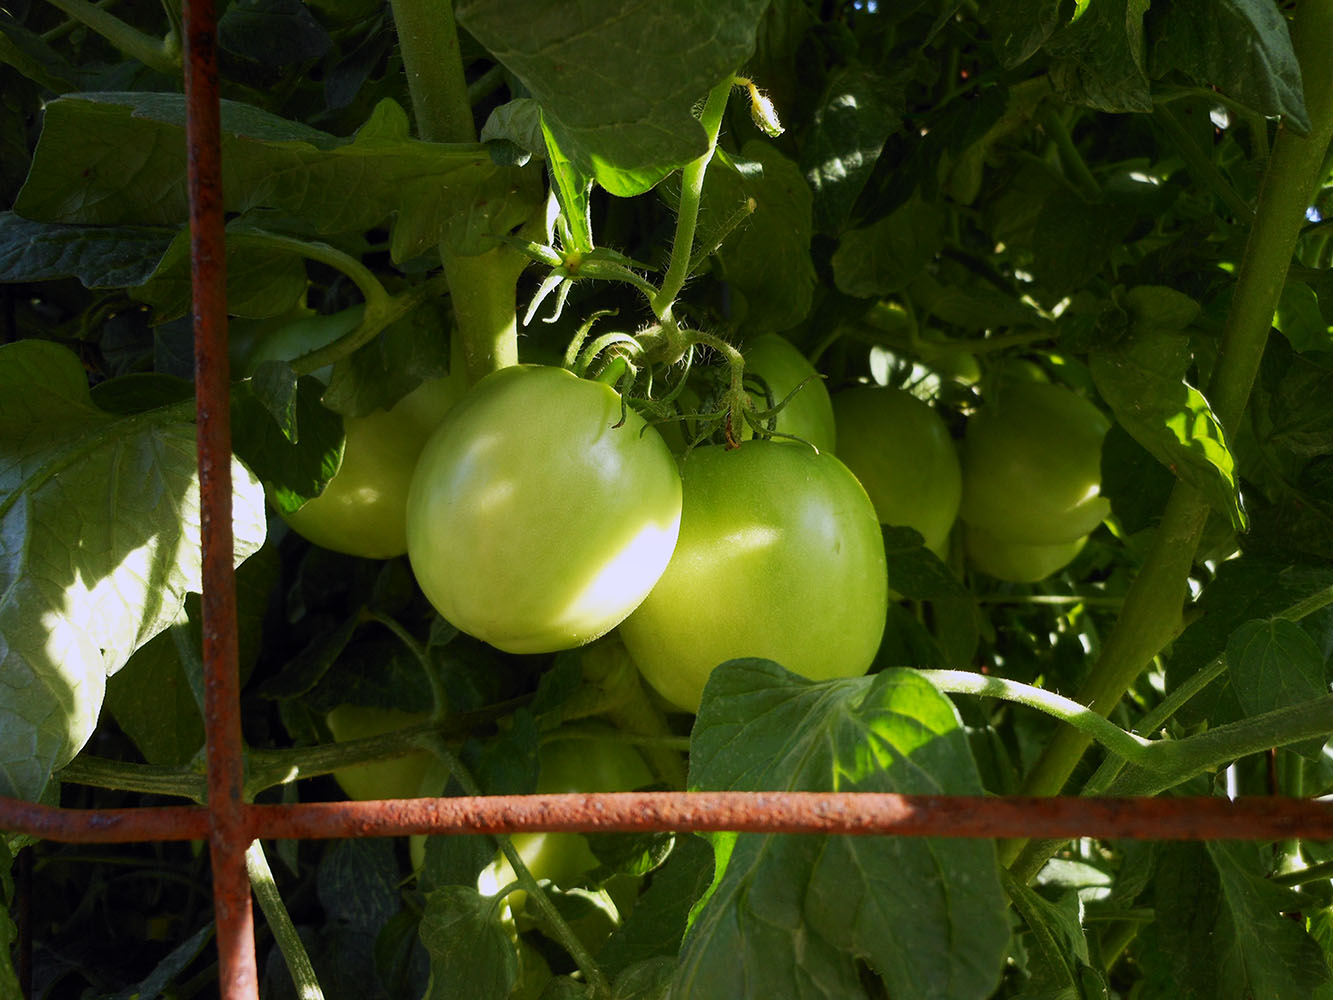 06-25-2015 Garden 01 Husky Cherry Red Tomatoes 01